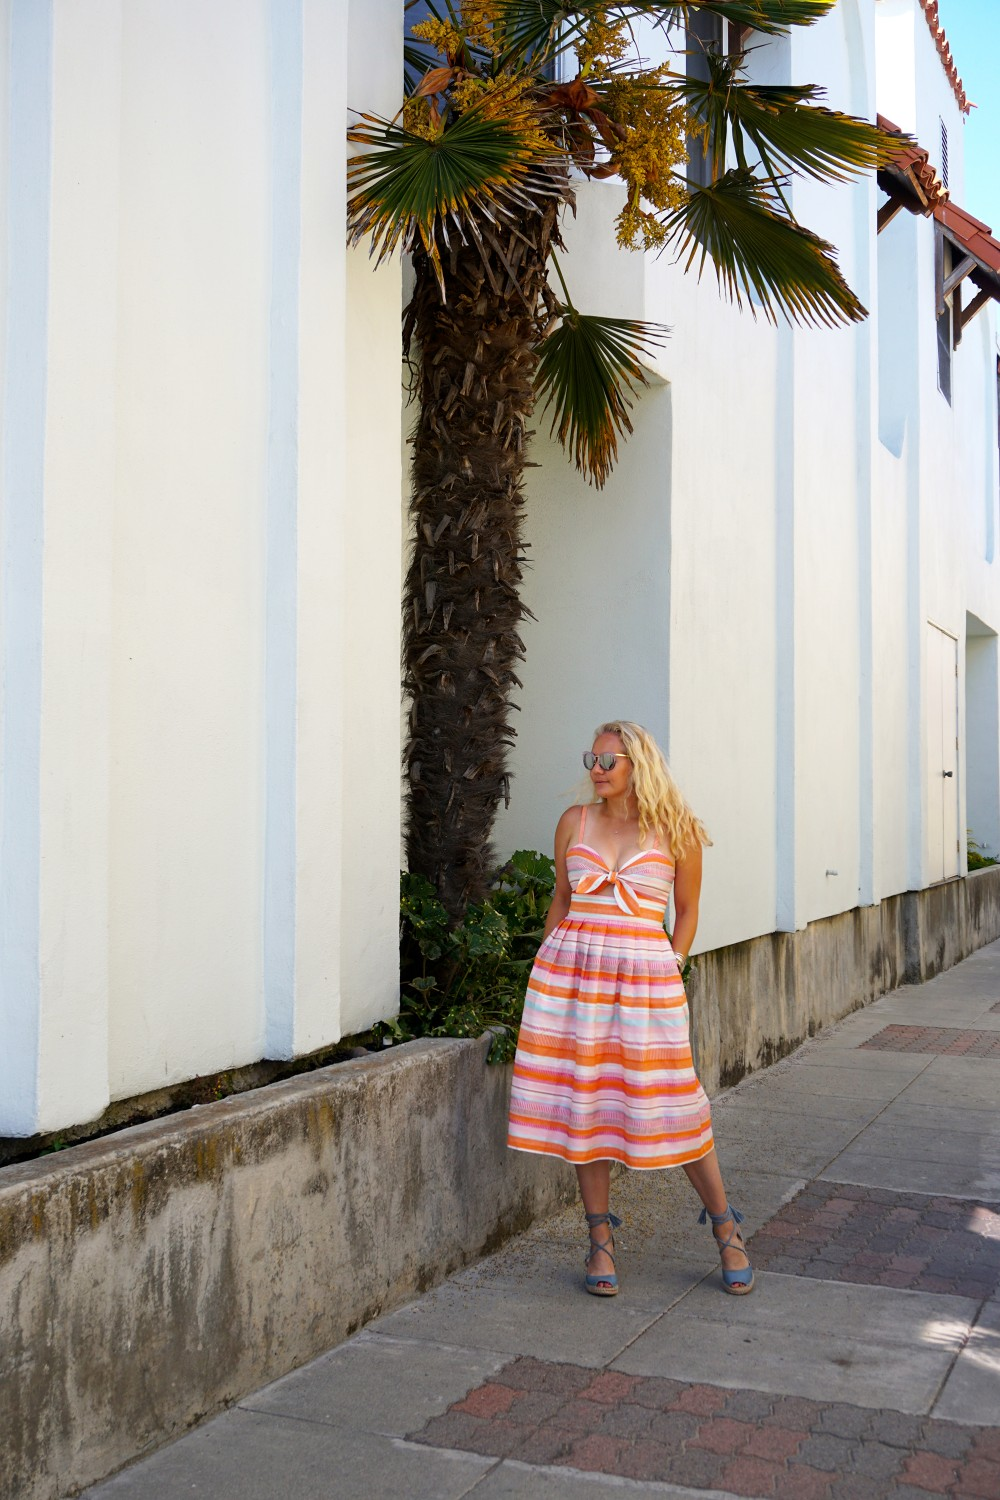 Spring Stripe Dress-Stripes and Cut Outs-Outfit Inspiration-Bay Area Blogger-Summer Dress-Sunday Best Outfit Inspiration-Have Need Want 4